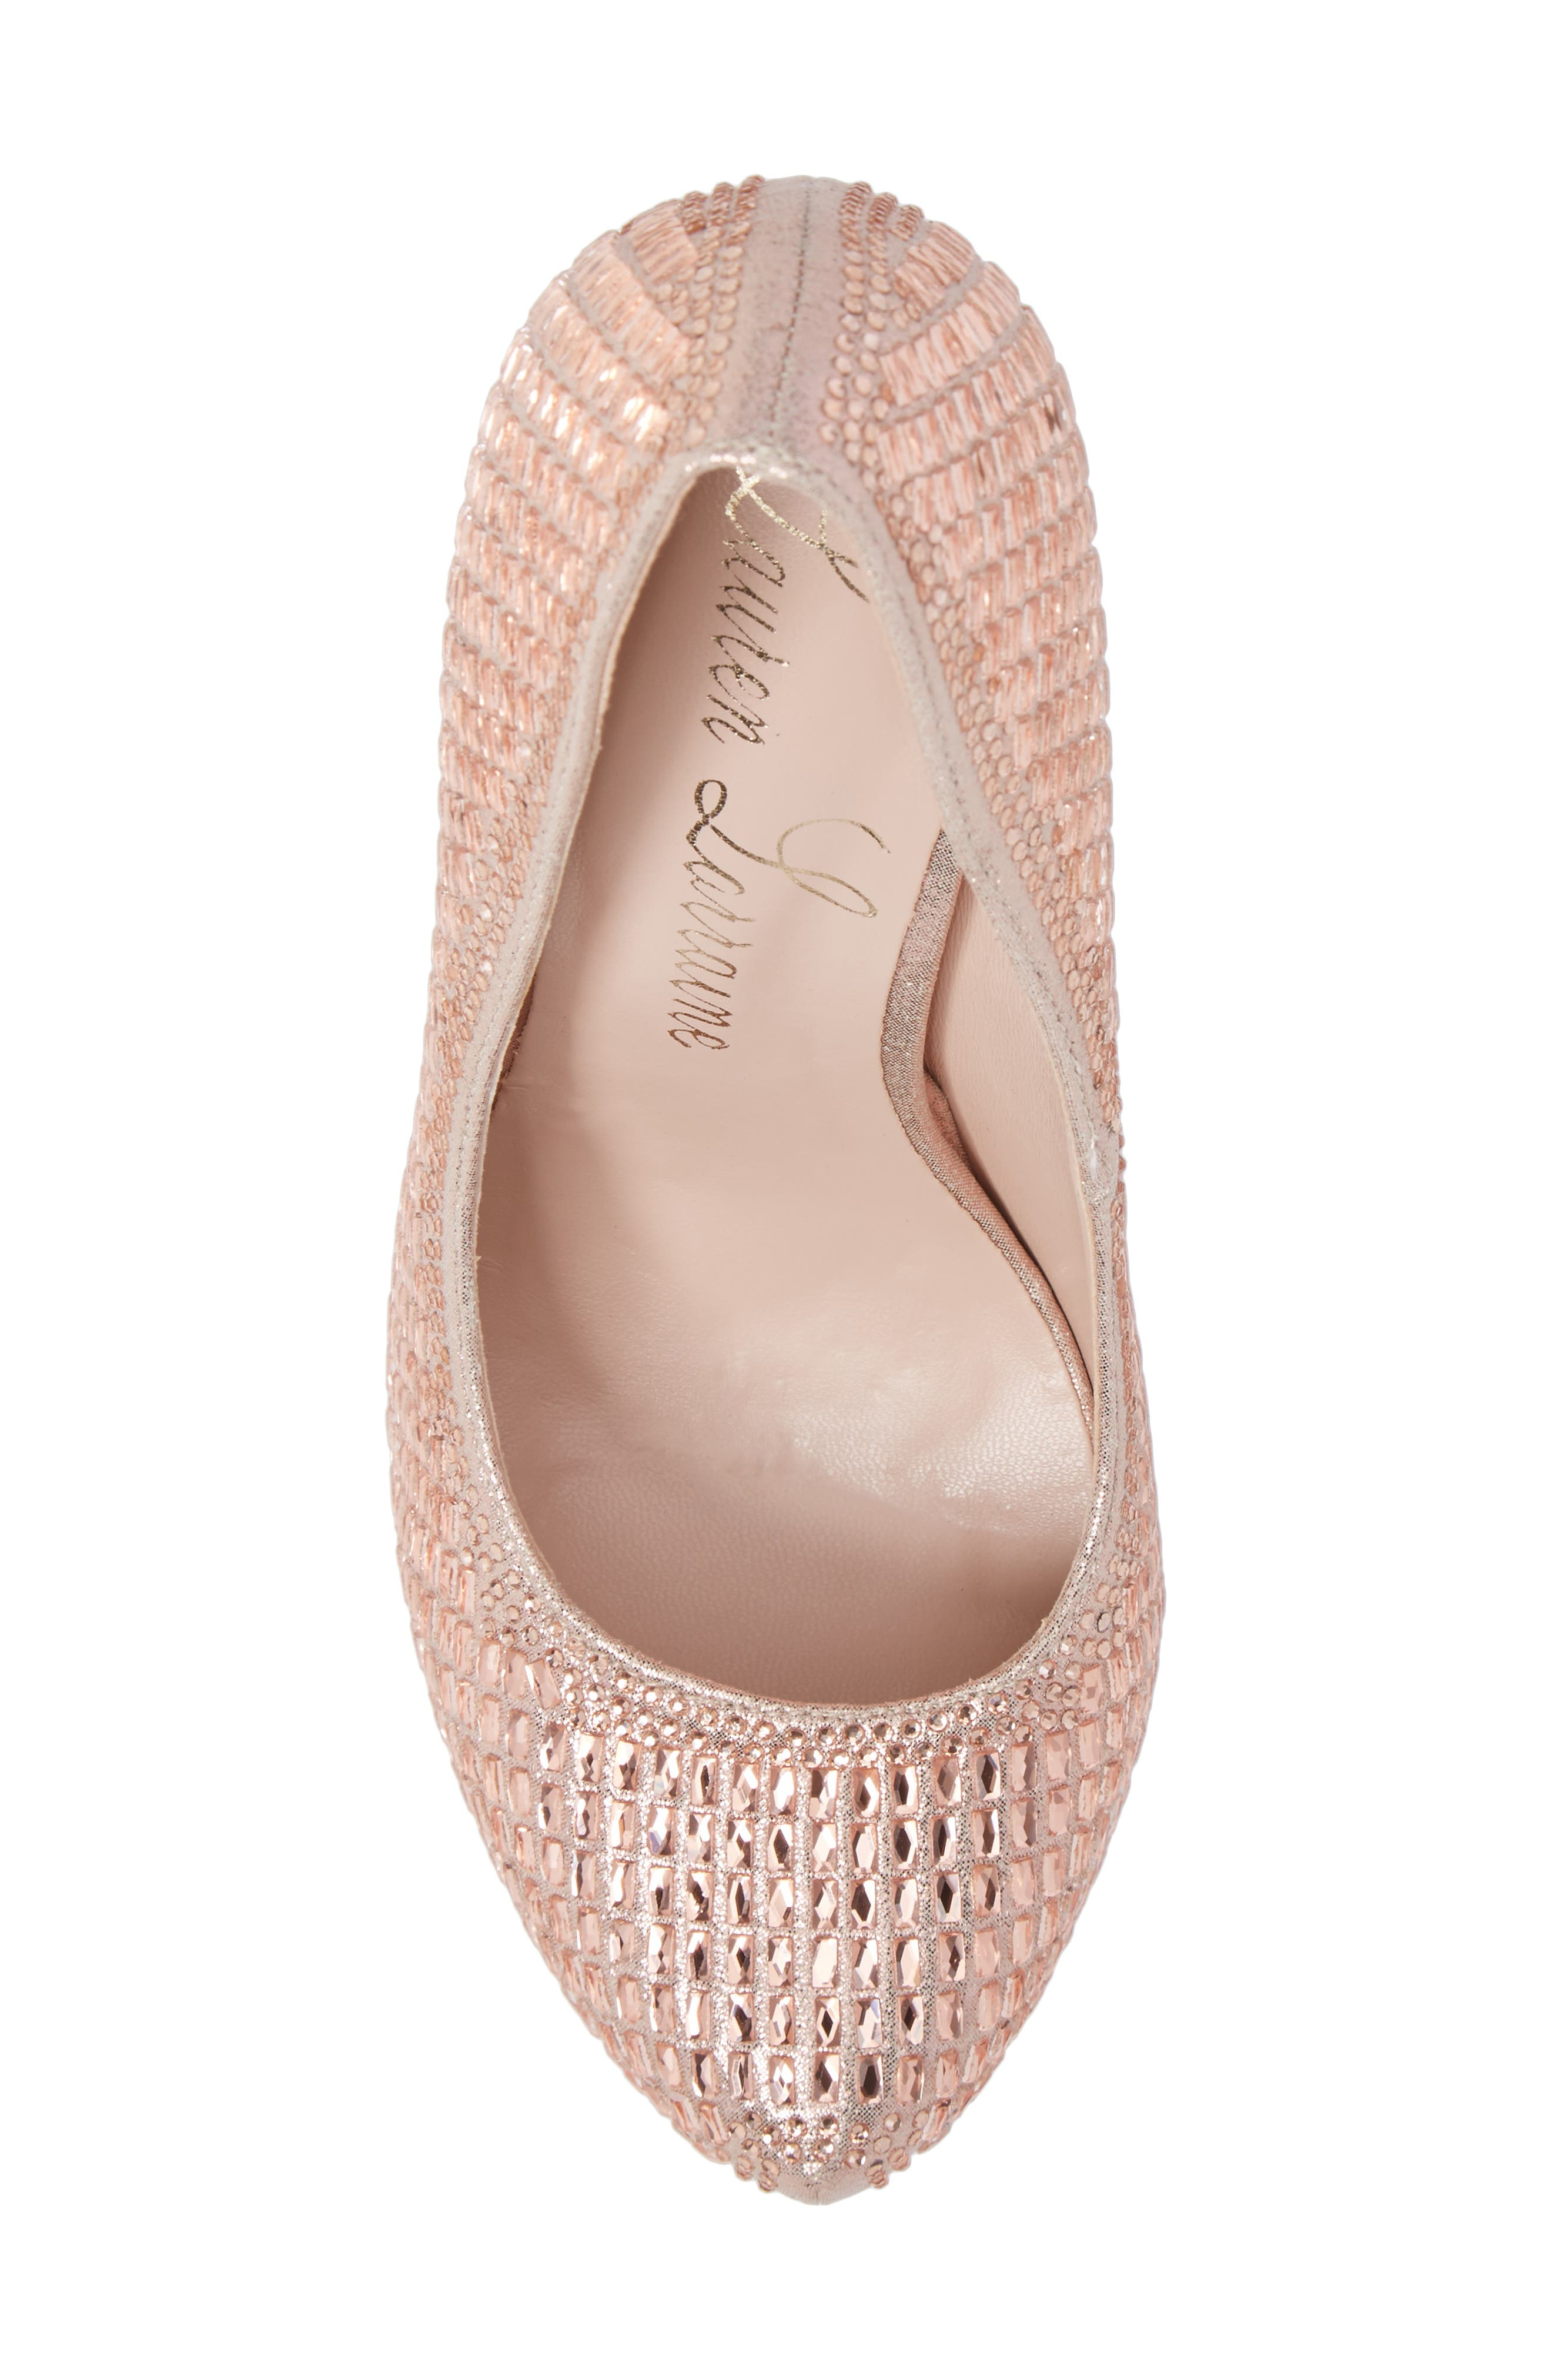 Vanna 5 Platform Pump,                             Alternate thumbnail 5, color,                             ROSE GOLD